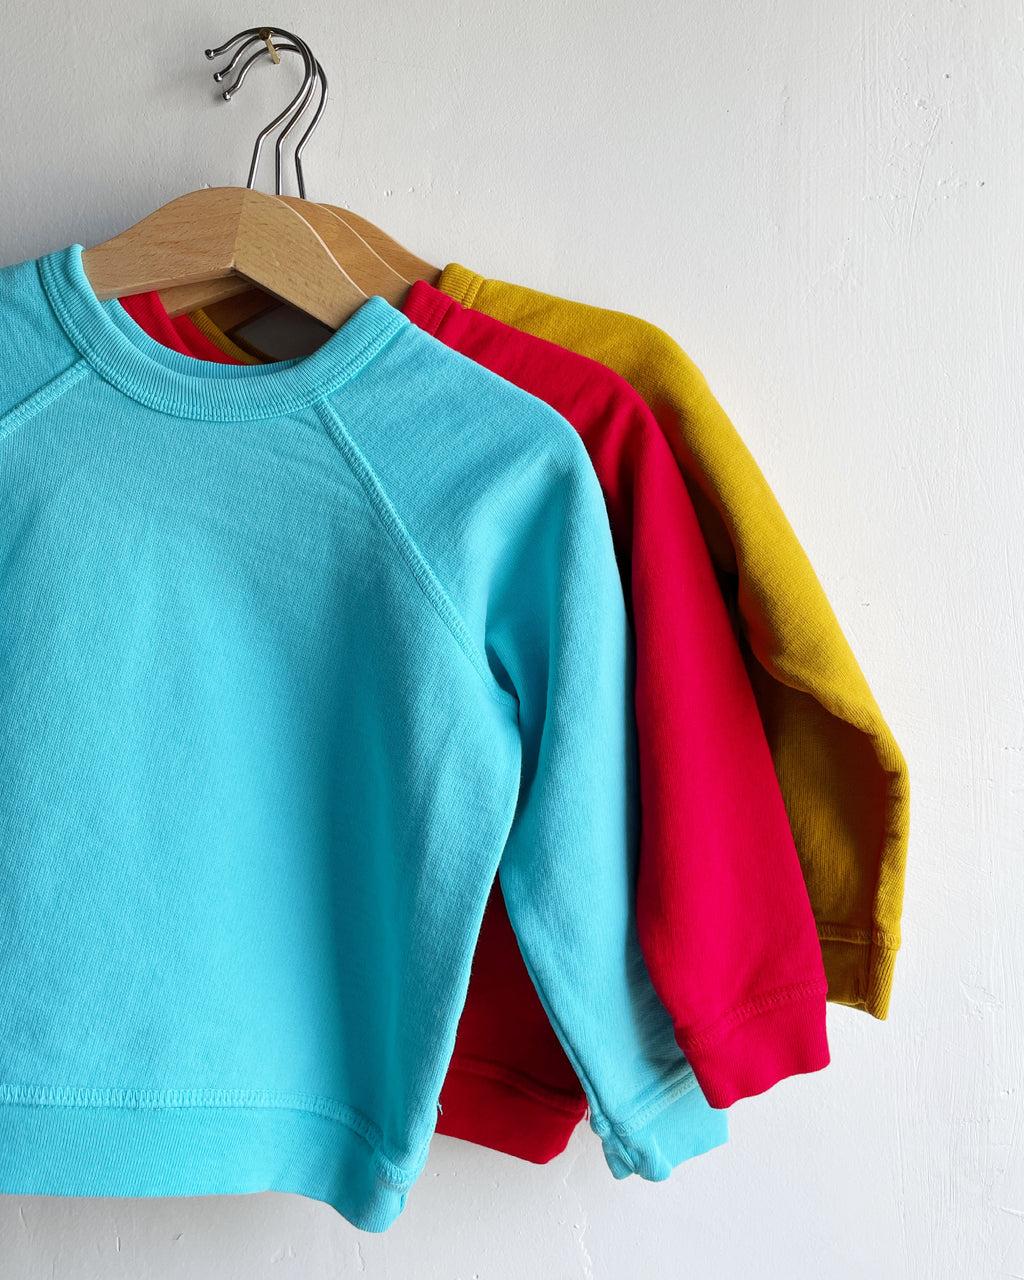 The Sweatshirt Aqua